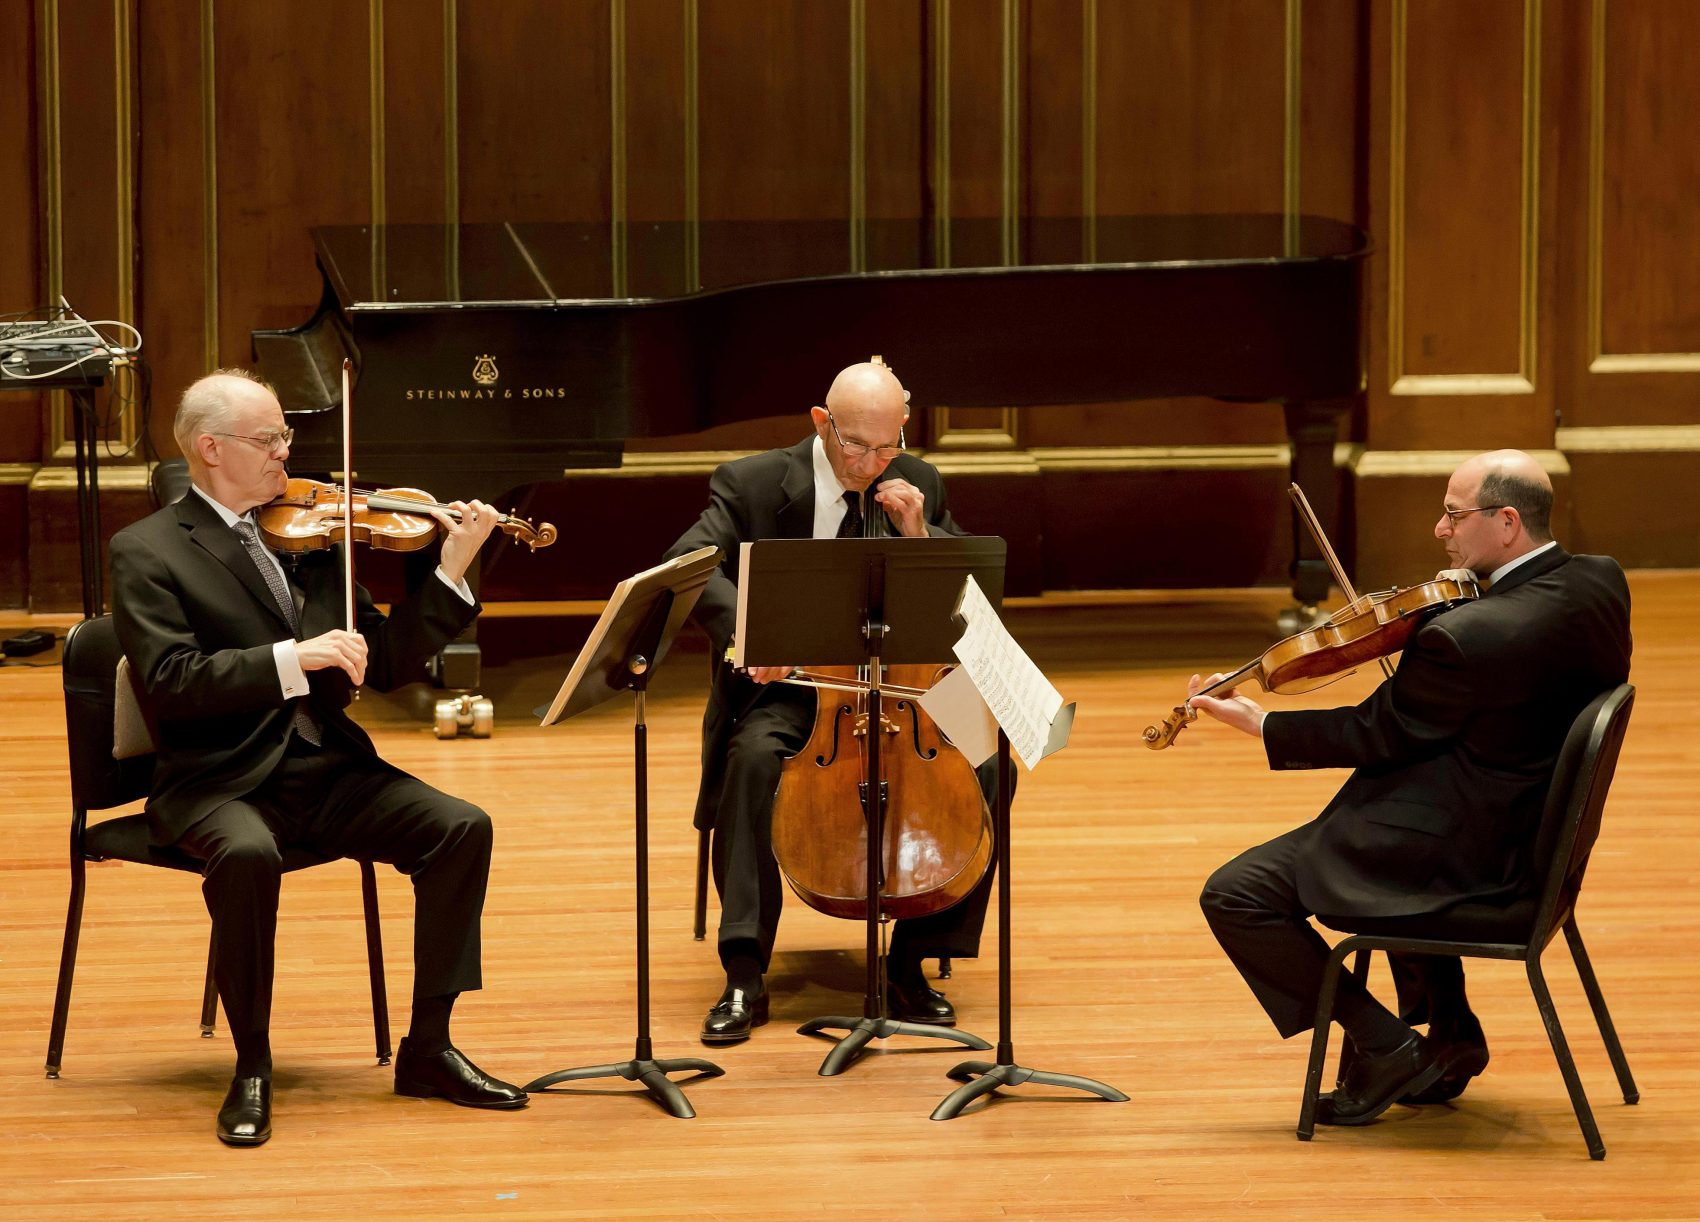 Jules Eskin performing in  a Boston Symphony Orchestra concert with Malcolm Lowe (left) and  Steven Ansell in 2015.  (Courtesy Winslow Townson/Boston Symphony Orchestra)